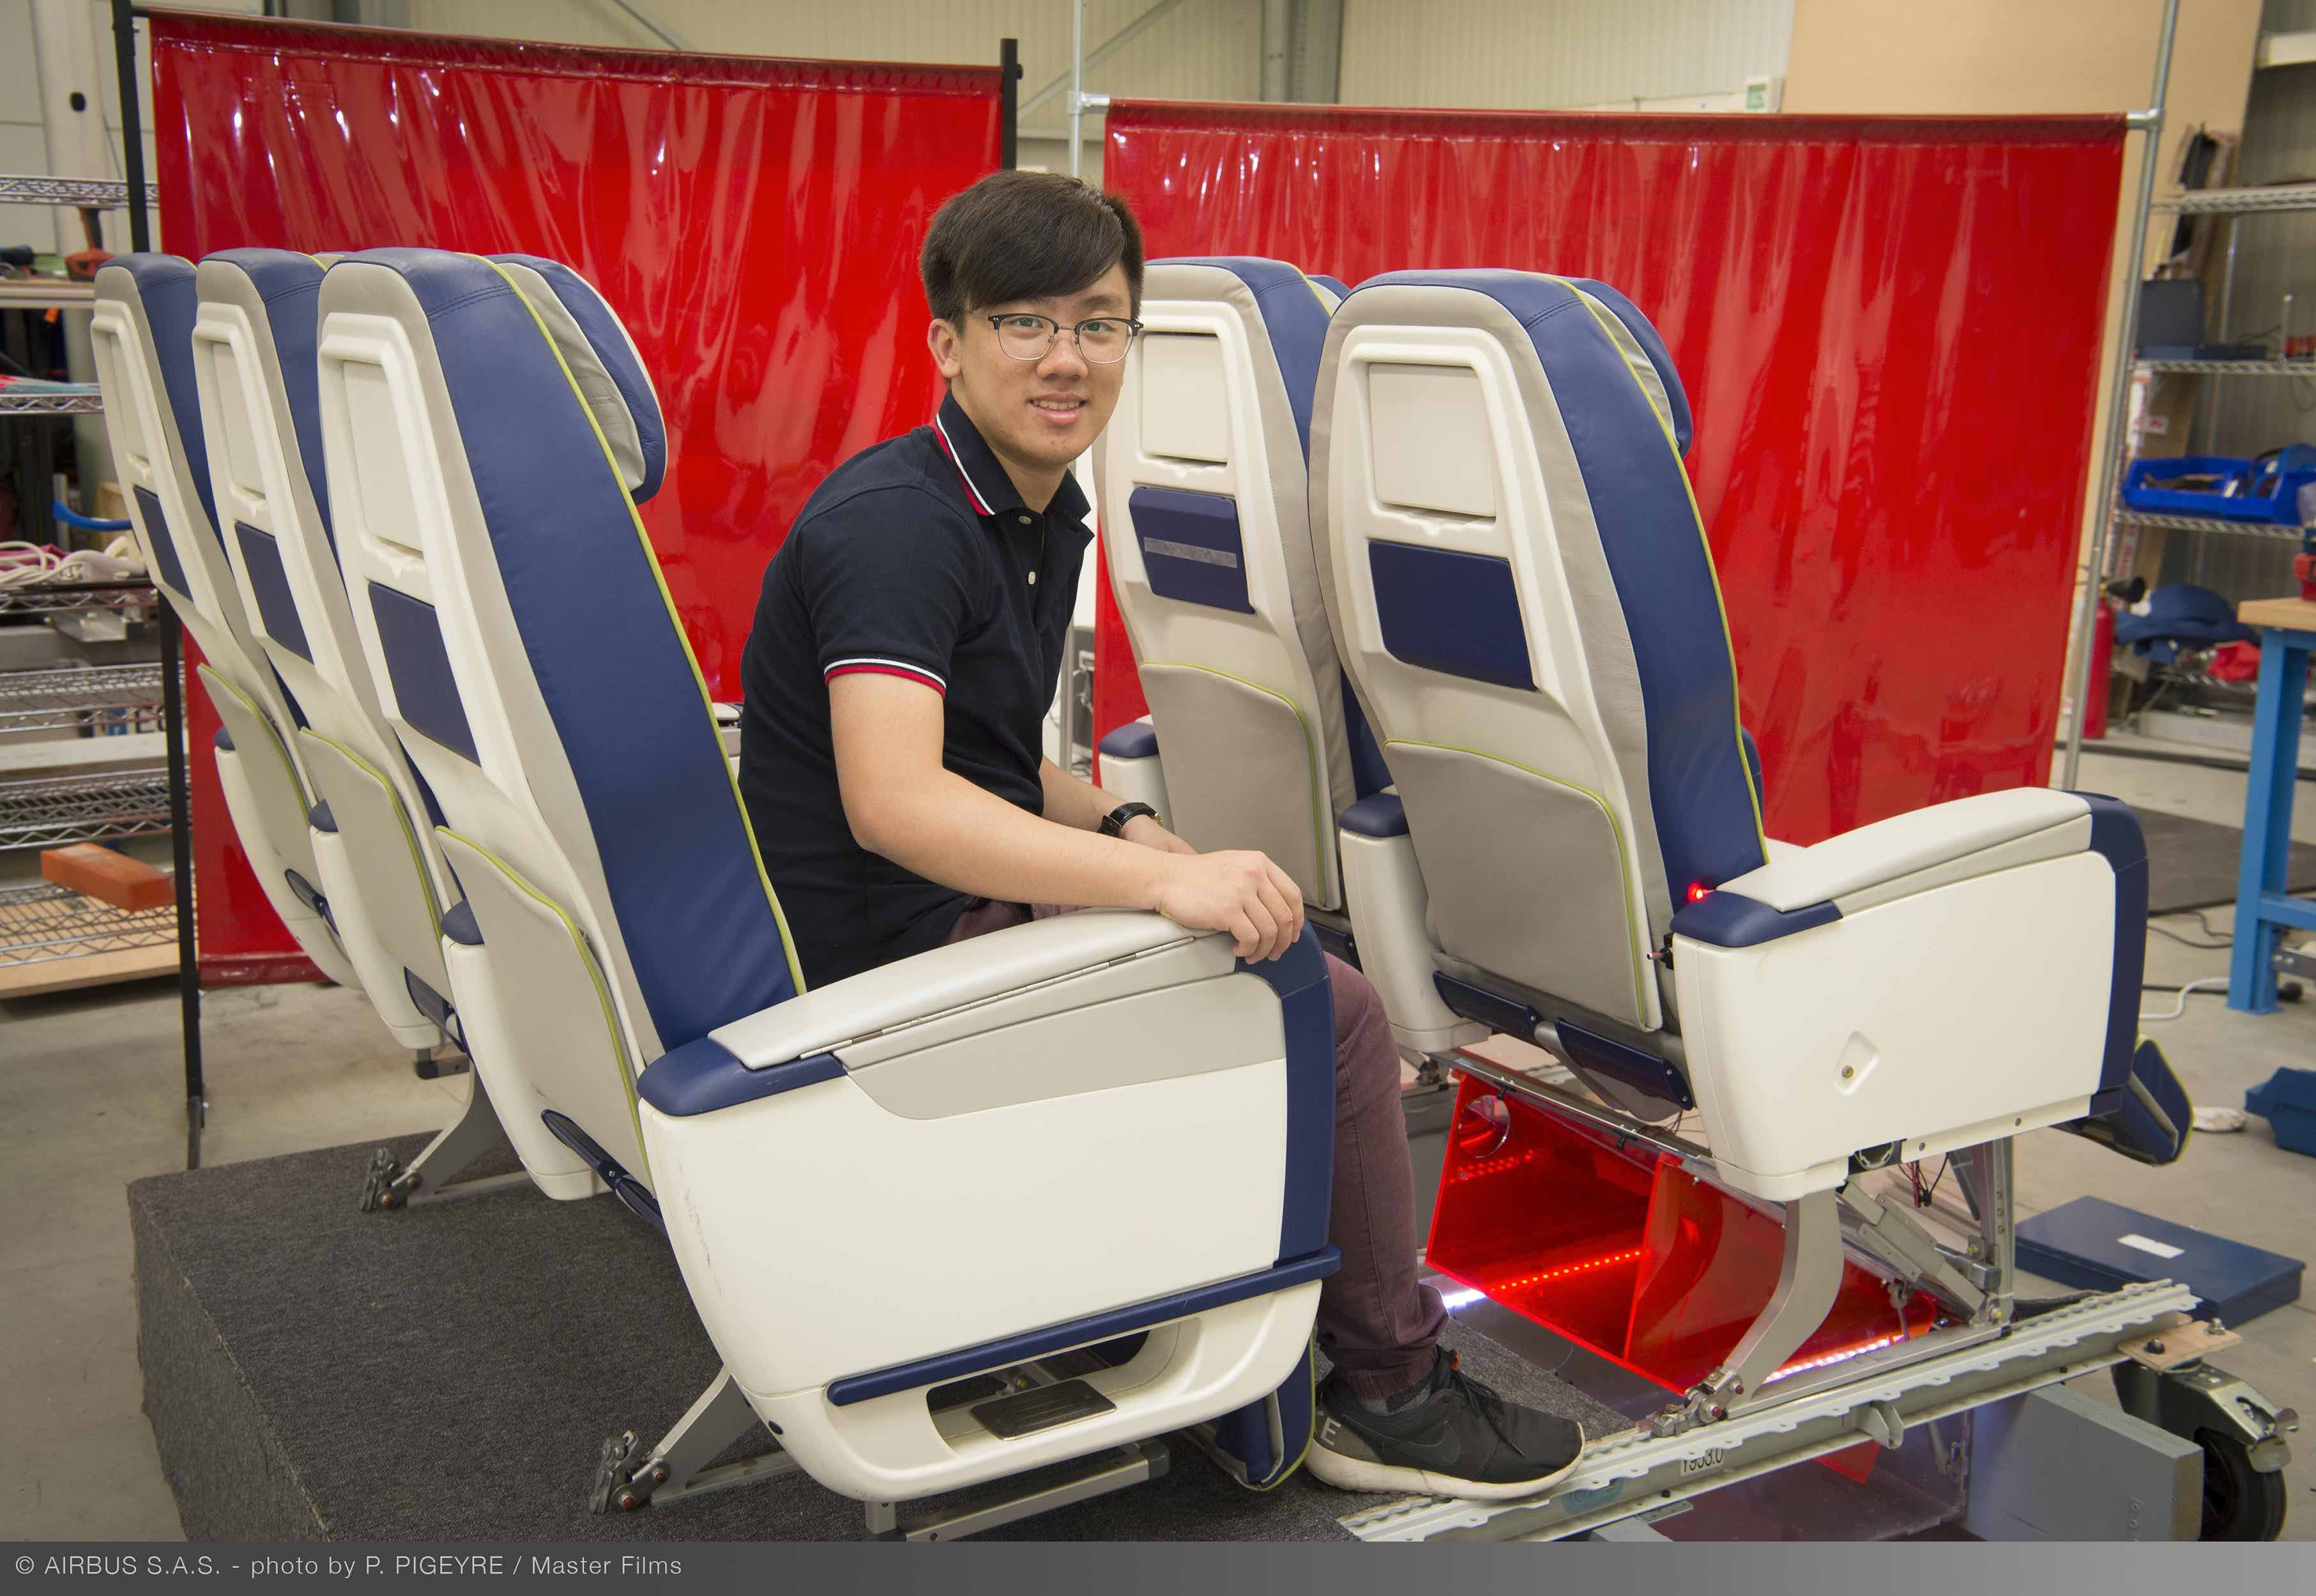 Airbus Fly Your Ideas 2017 Winners: Team DAELead from The University of Hong Kong. Image: Airbus